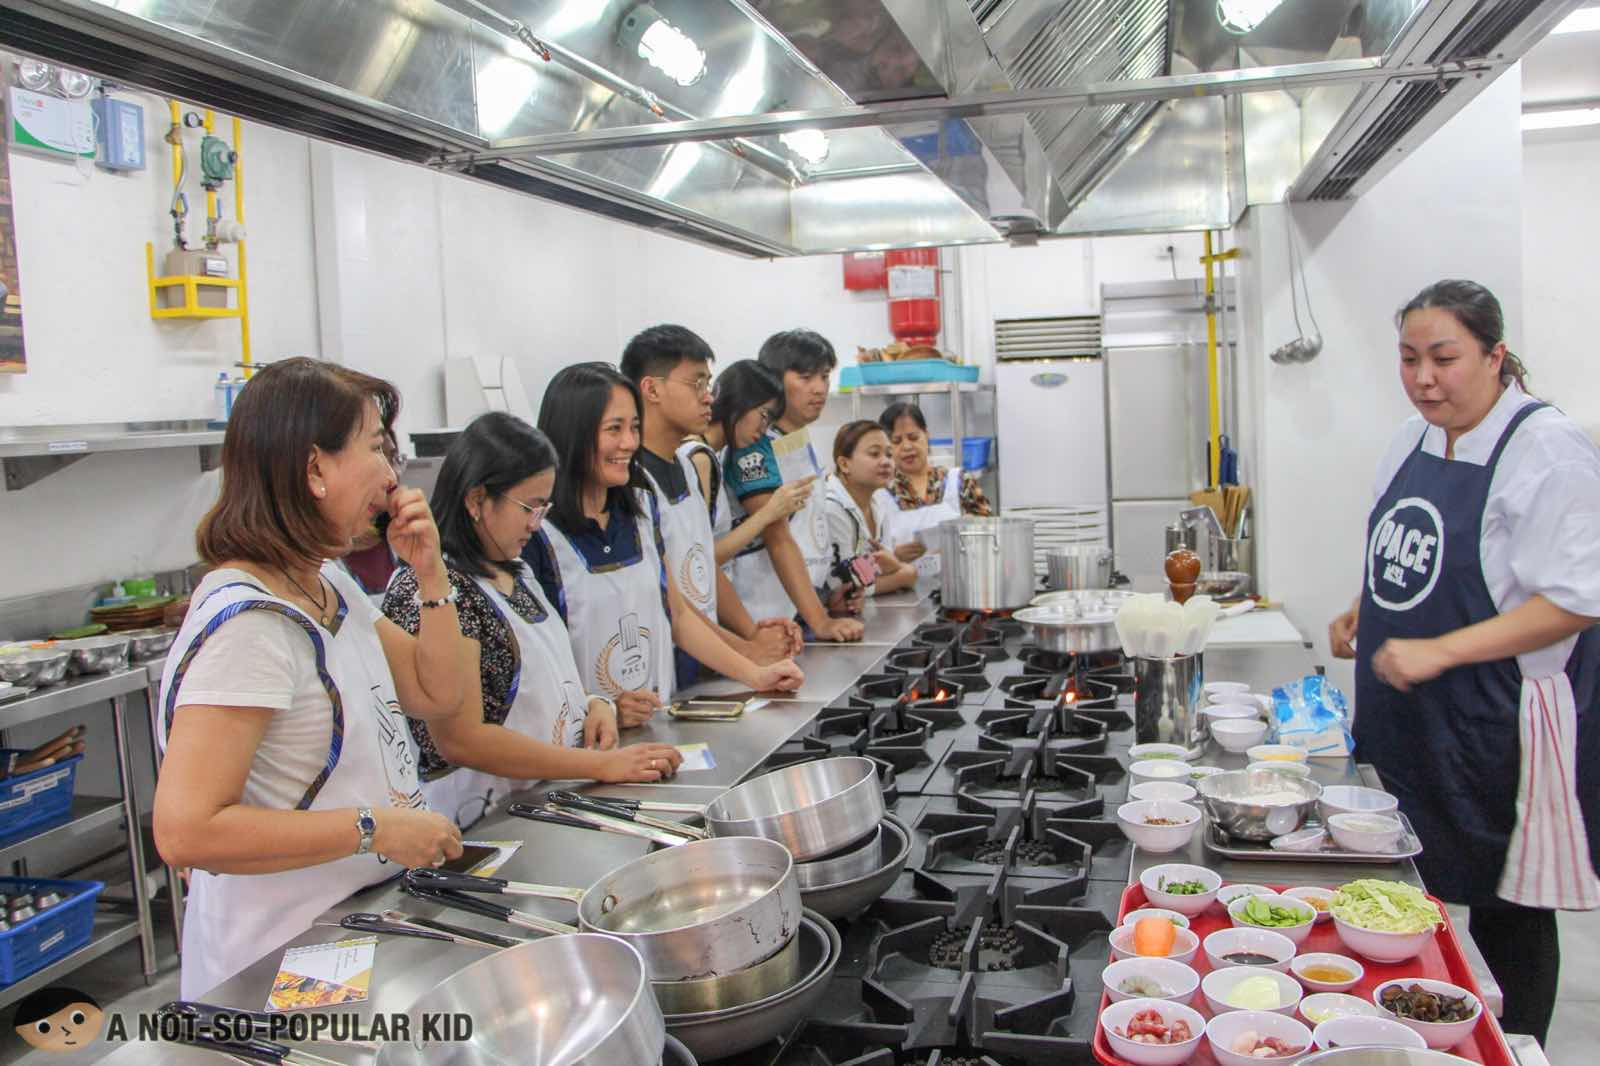 Students/participants in PACE's Group Culinary Activity